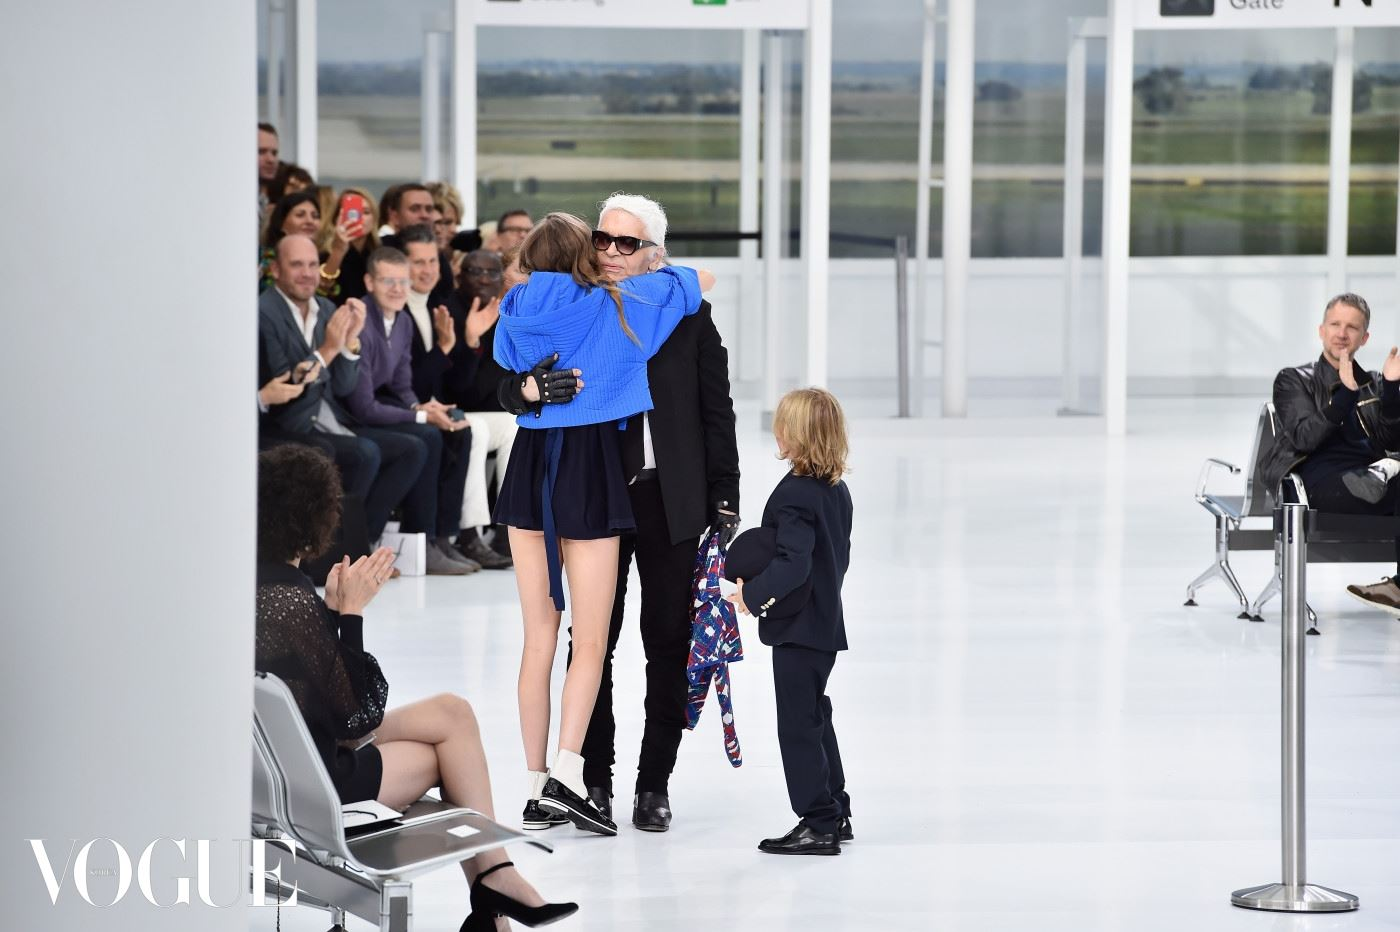 PARIS, FRANCE - OCTOBER 06:  Model Cara Delevingne and Hudson Kroenig greet the Designer Karl Lagerfeld during the Chanel show as part of the Paris Fashion Week Womenswear Spring/Summer 2016 on October 6, 2015 in Paris, France.  (Photo by Pascal Le Segretain/Getty Images)